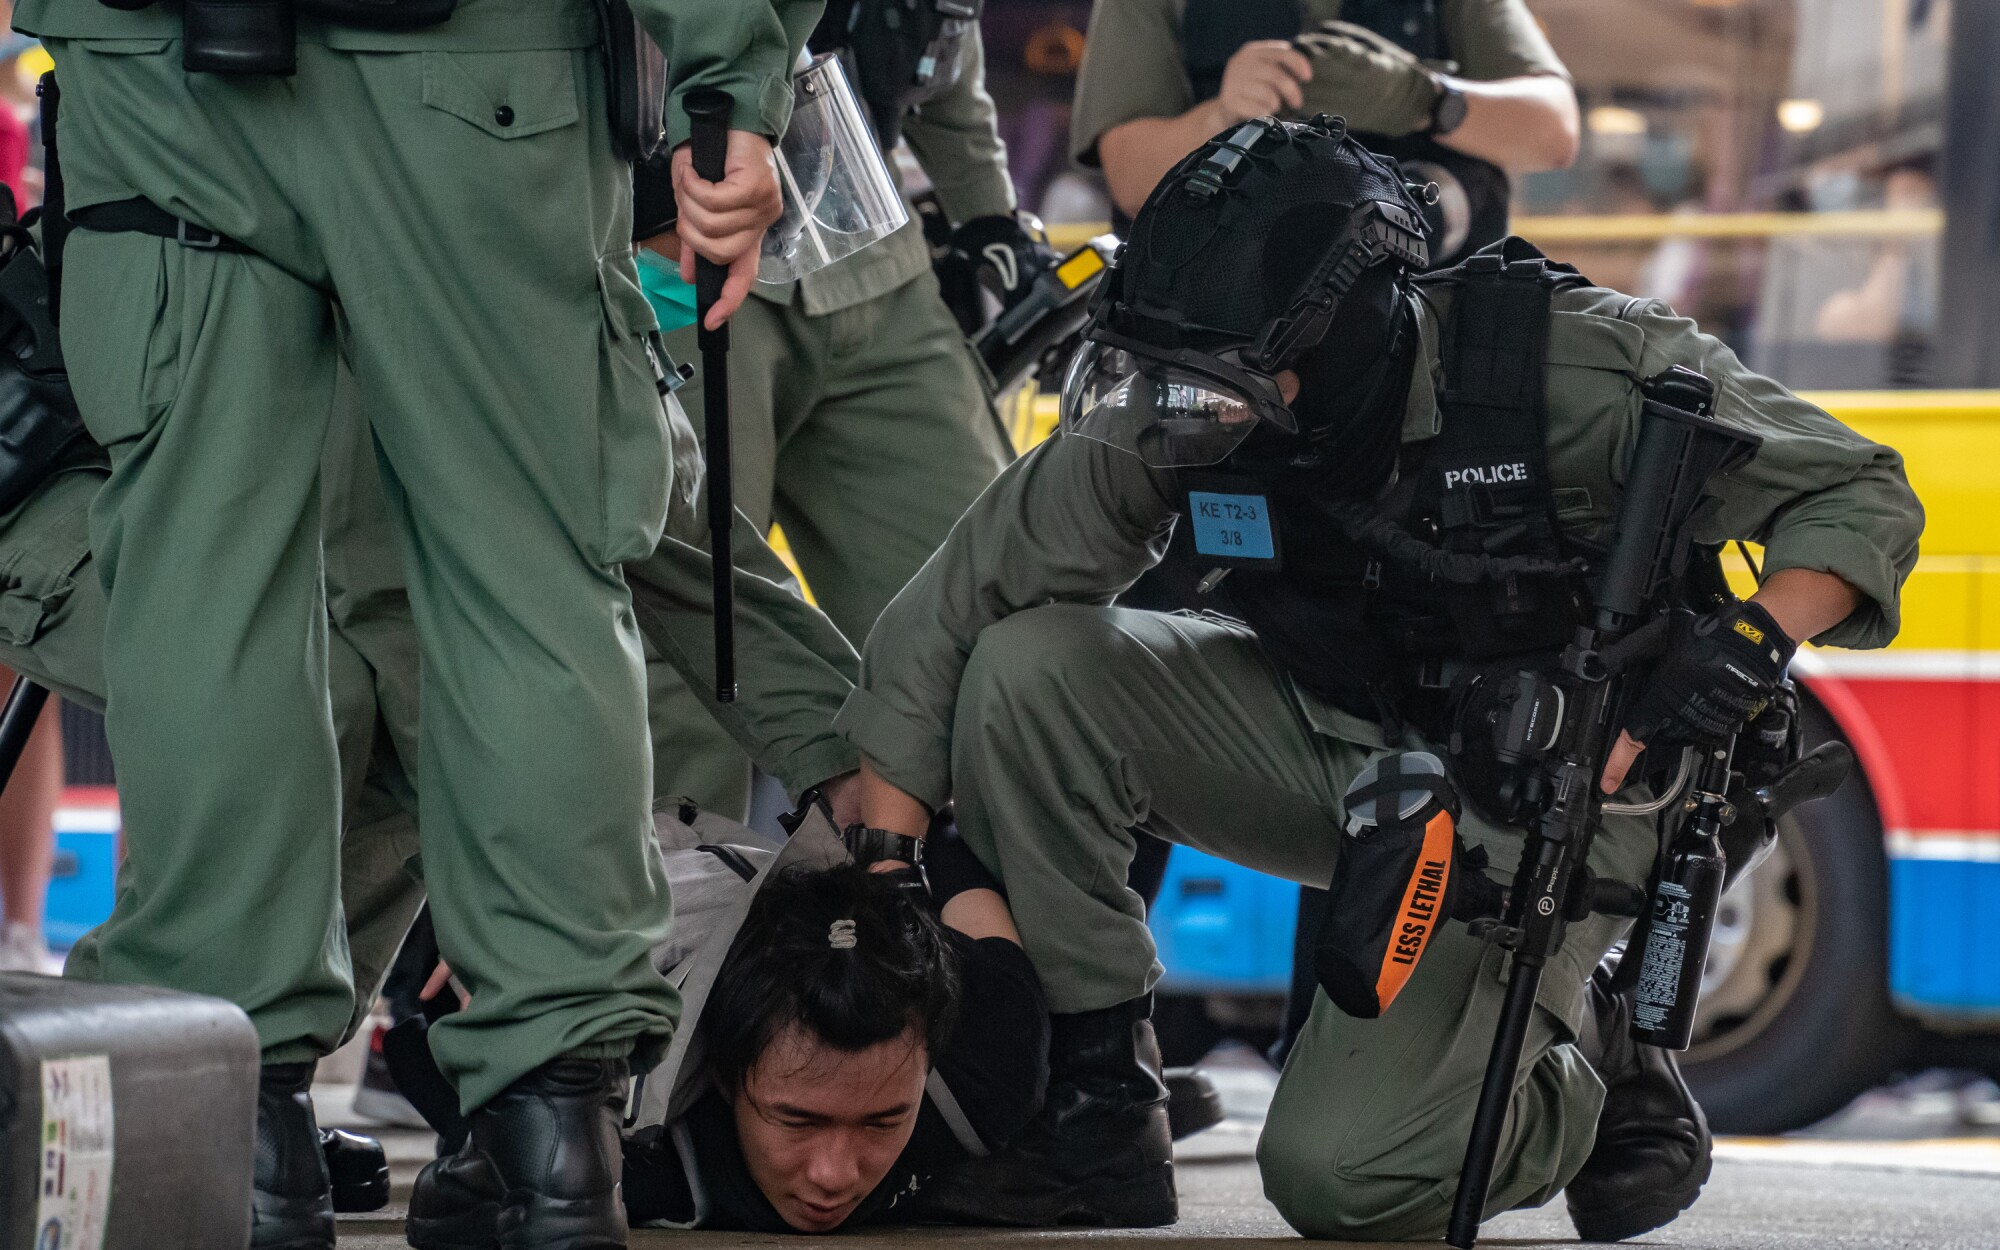 Riot police arrest a man Wednesday during a demonstration against the new national security law in Hong Kong.